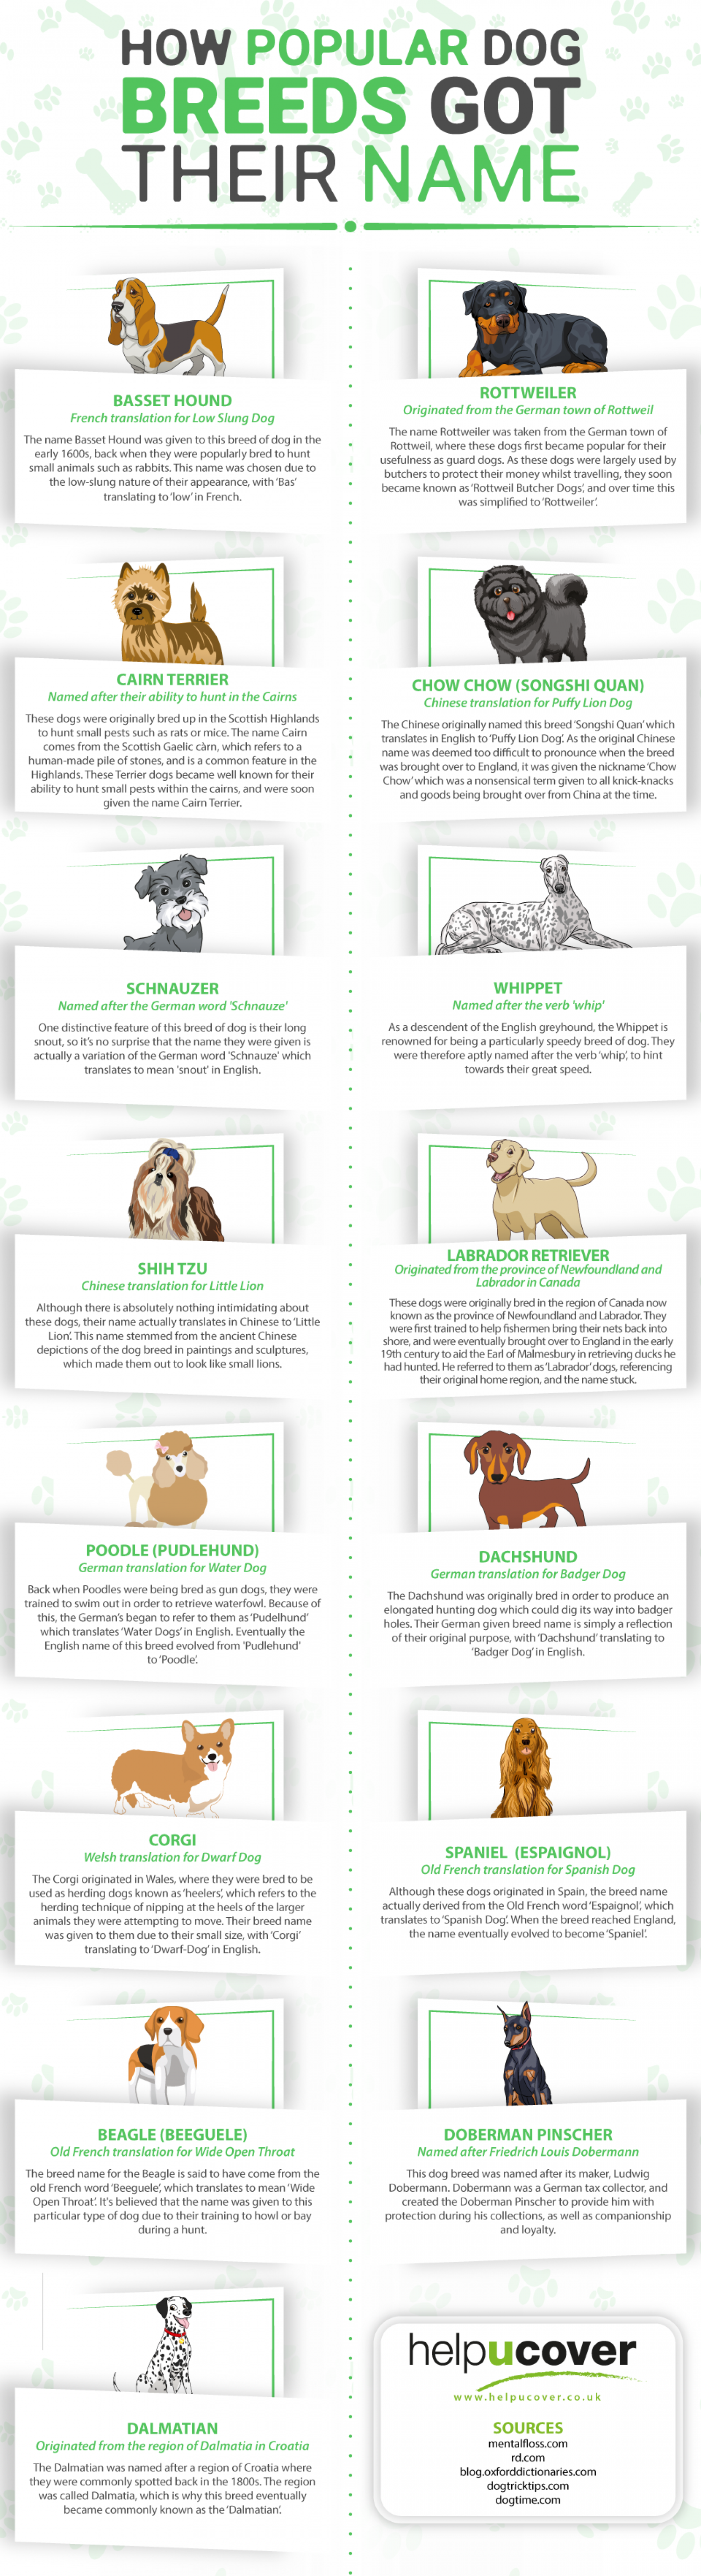 Visual Top Ten Dog Names | Book Marketing